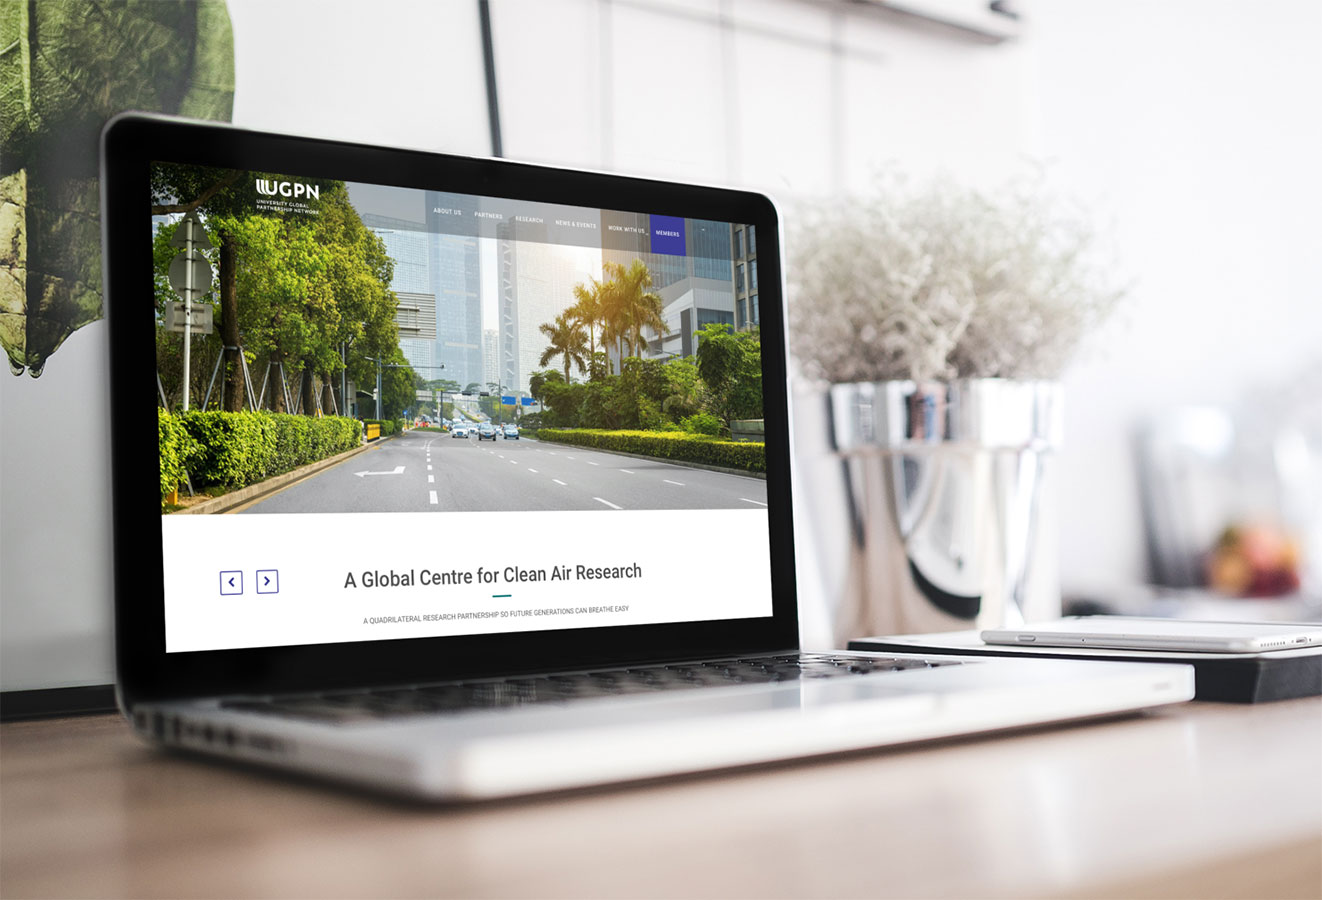 UGPN Research landing page for clean air research with view of street in China